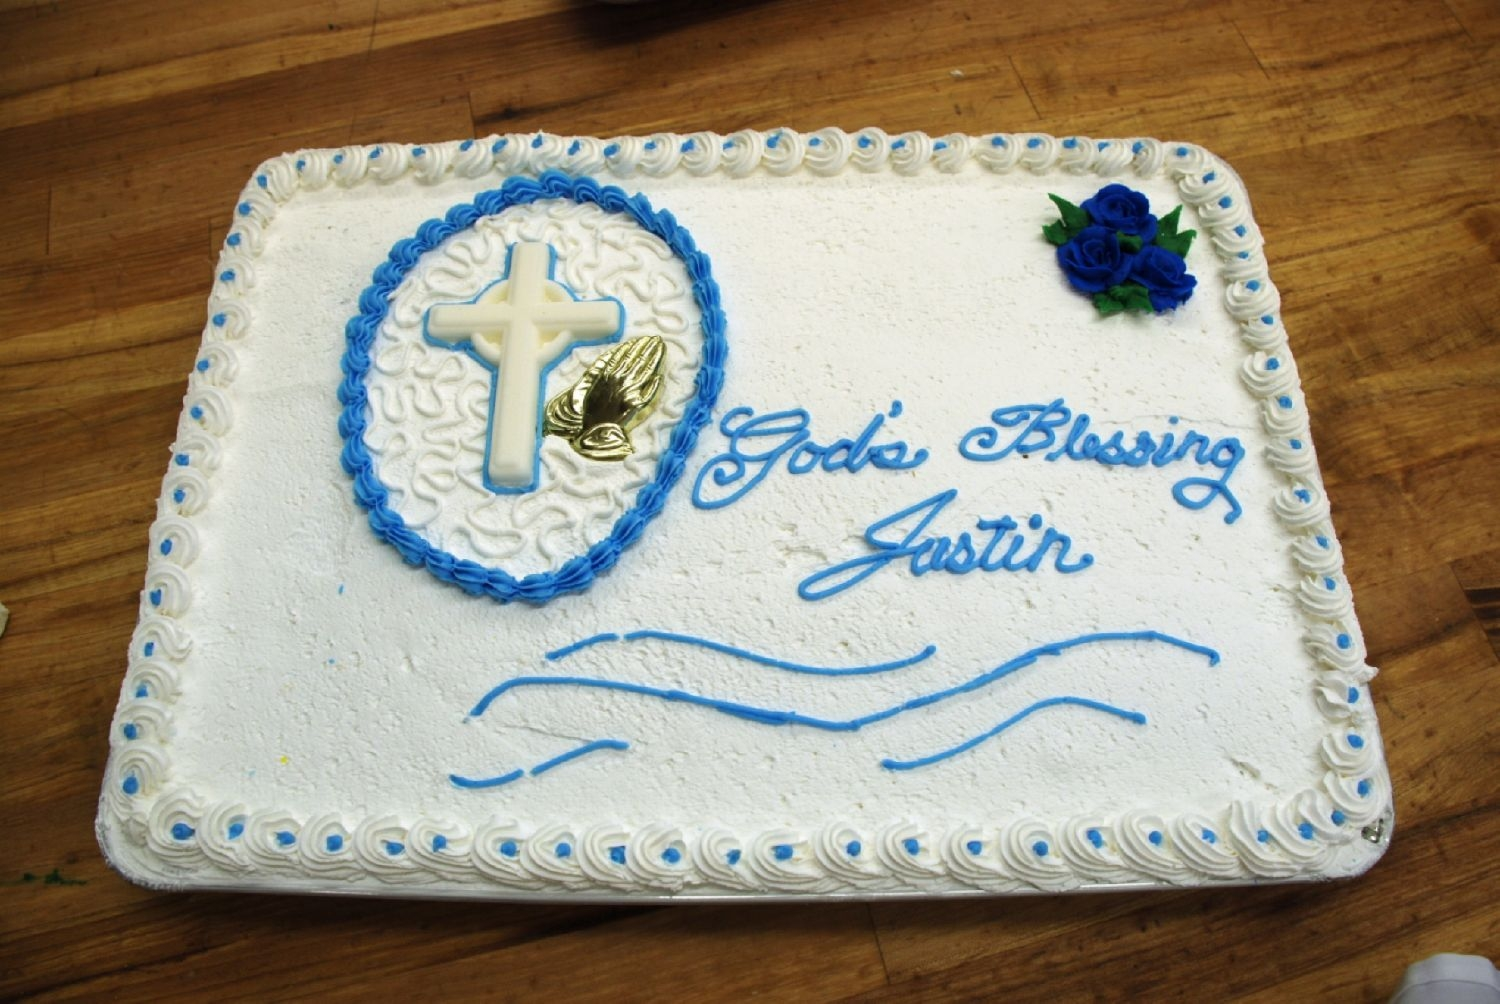 Boy Baptism Here is a cake I made for a boys baptism this weekend. I used regular buttercream frosting and did Cornelli Lace around the cross.